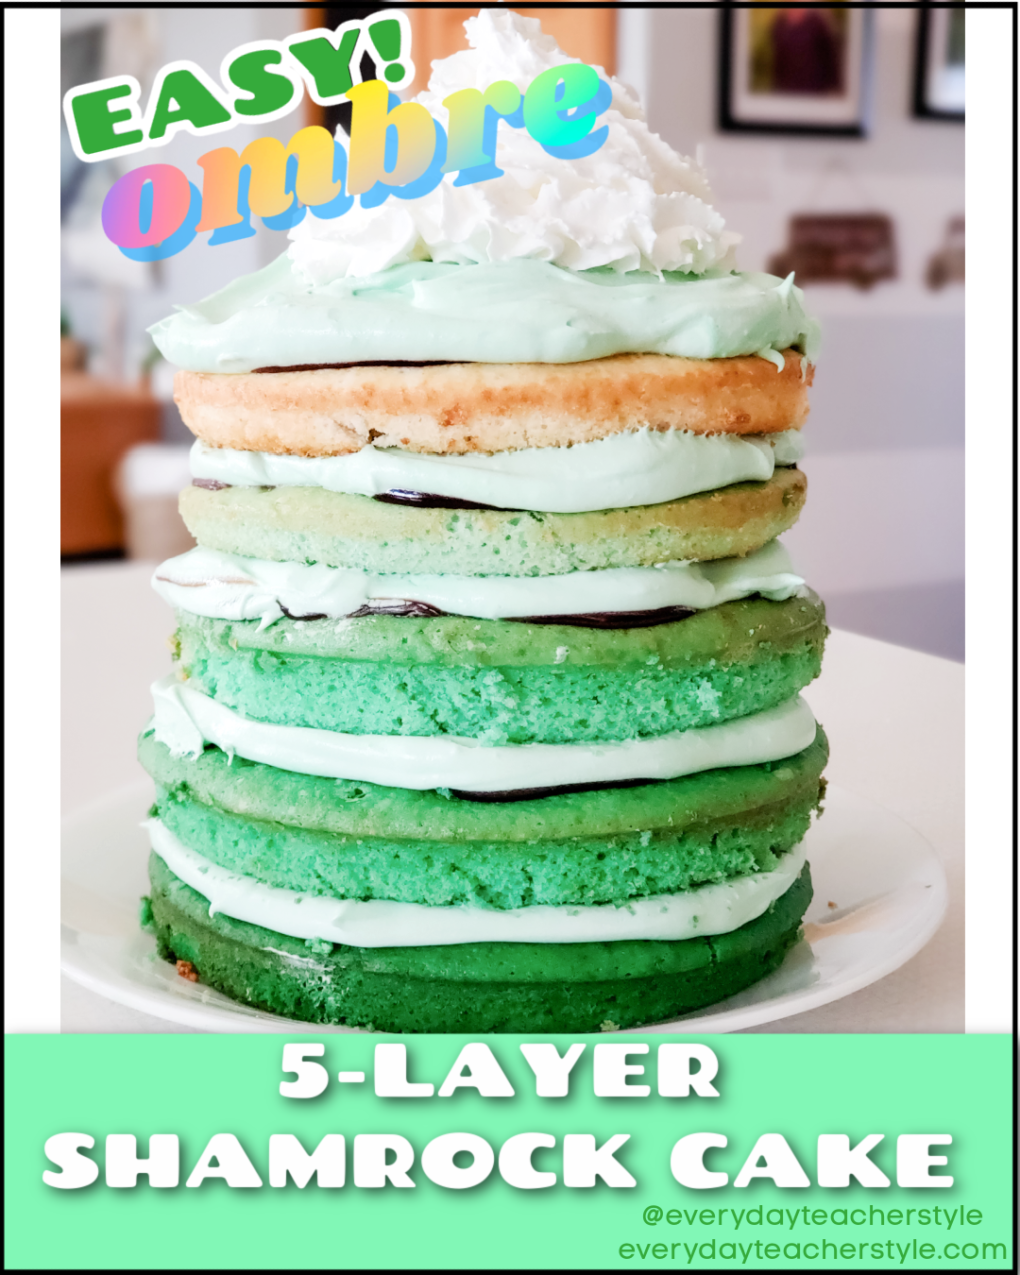 Everyday Teacher Style Green Ombre 5-layer Shamrock Cake Mint Chocolate Recipe image